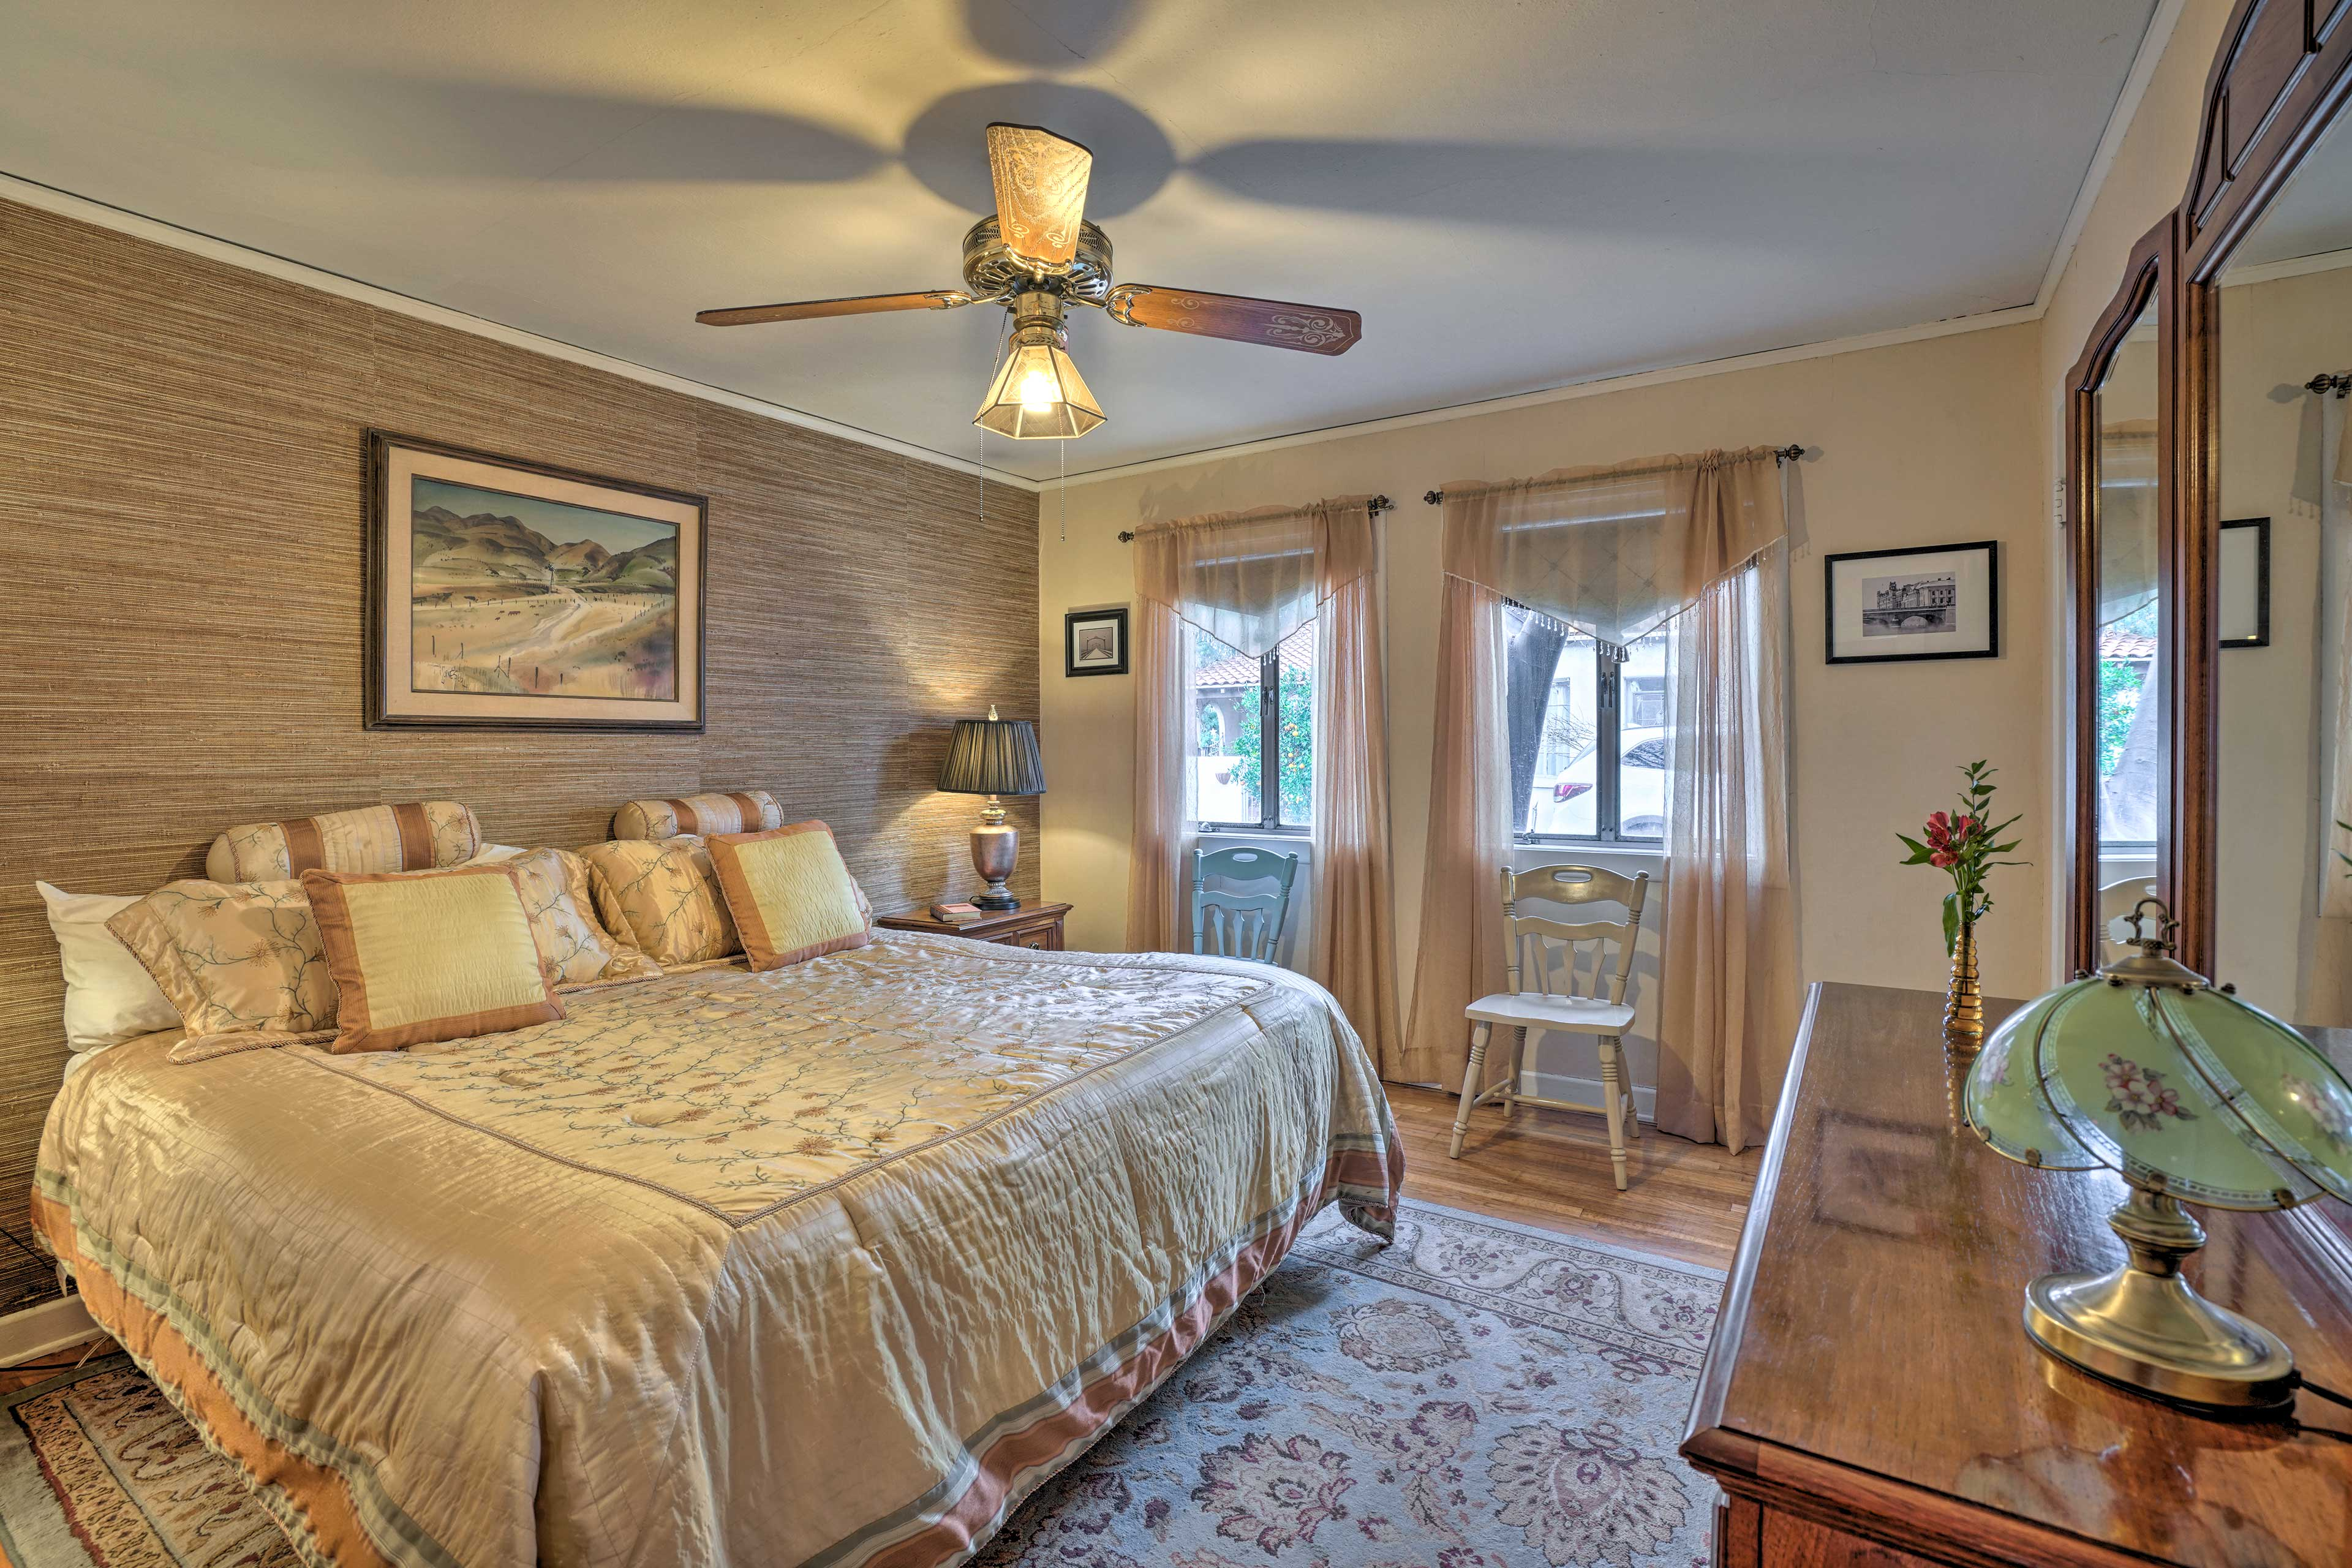 Curl up in the king bed that highlights the master bedroom.